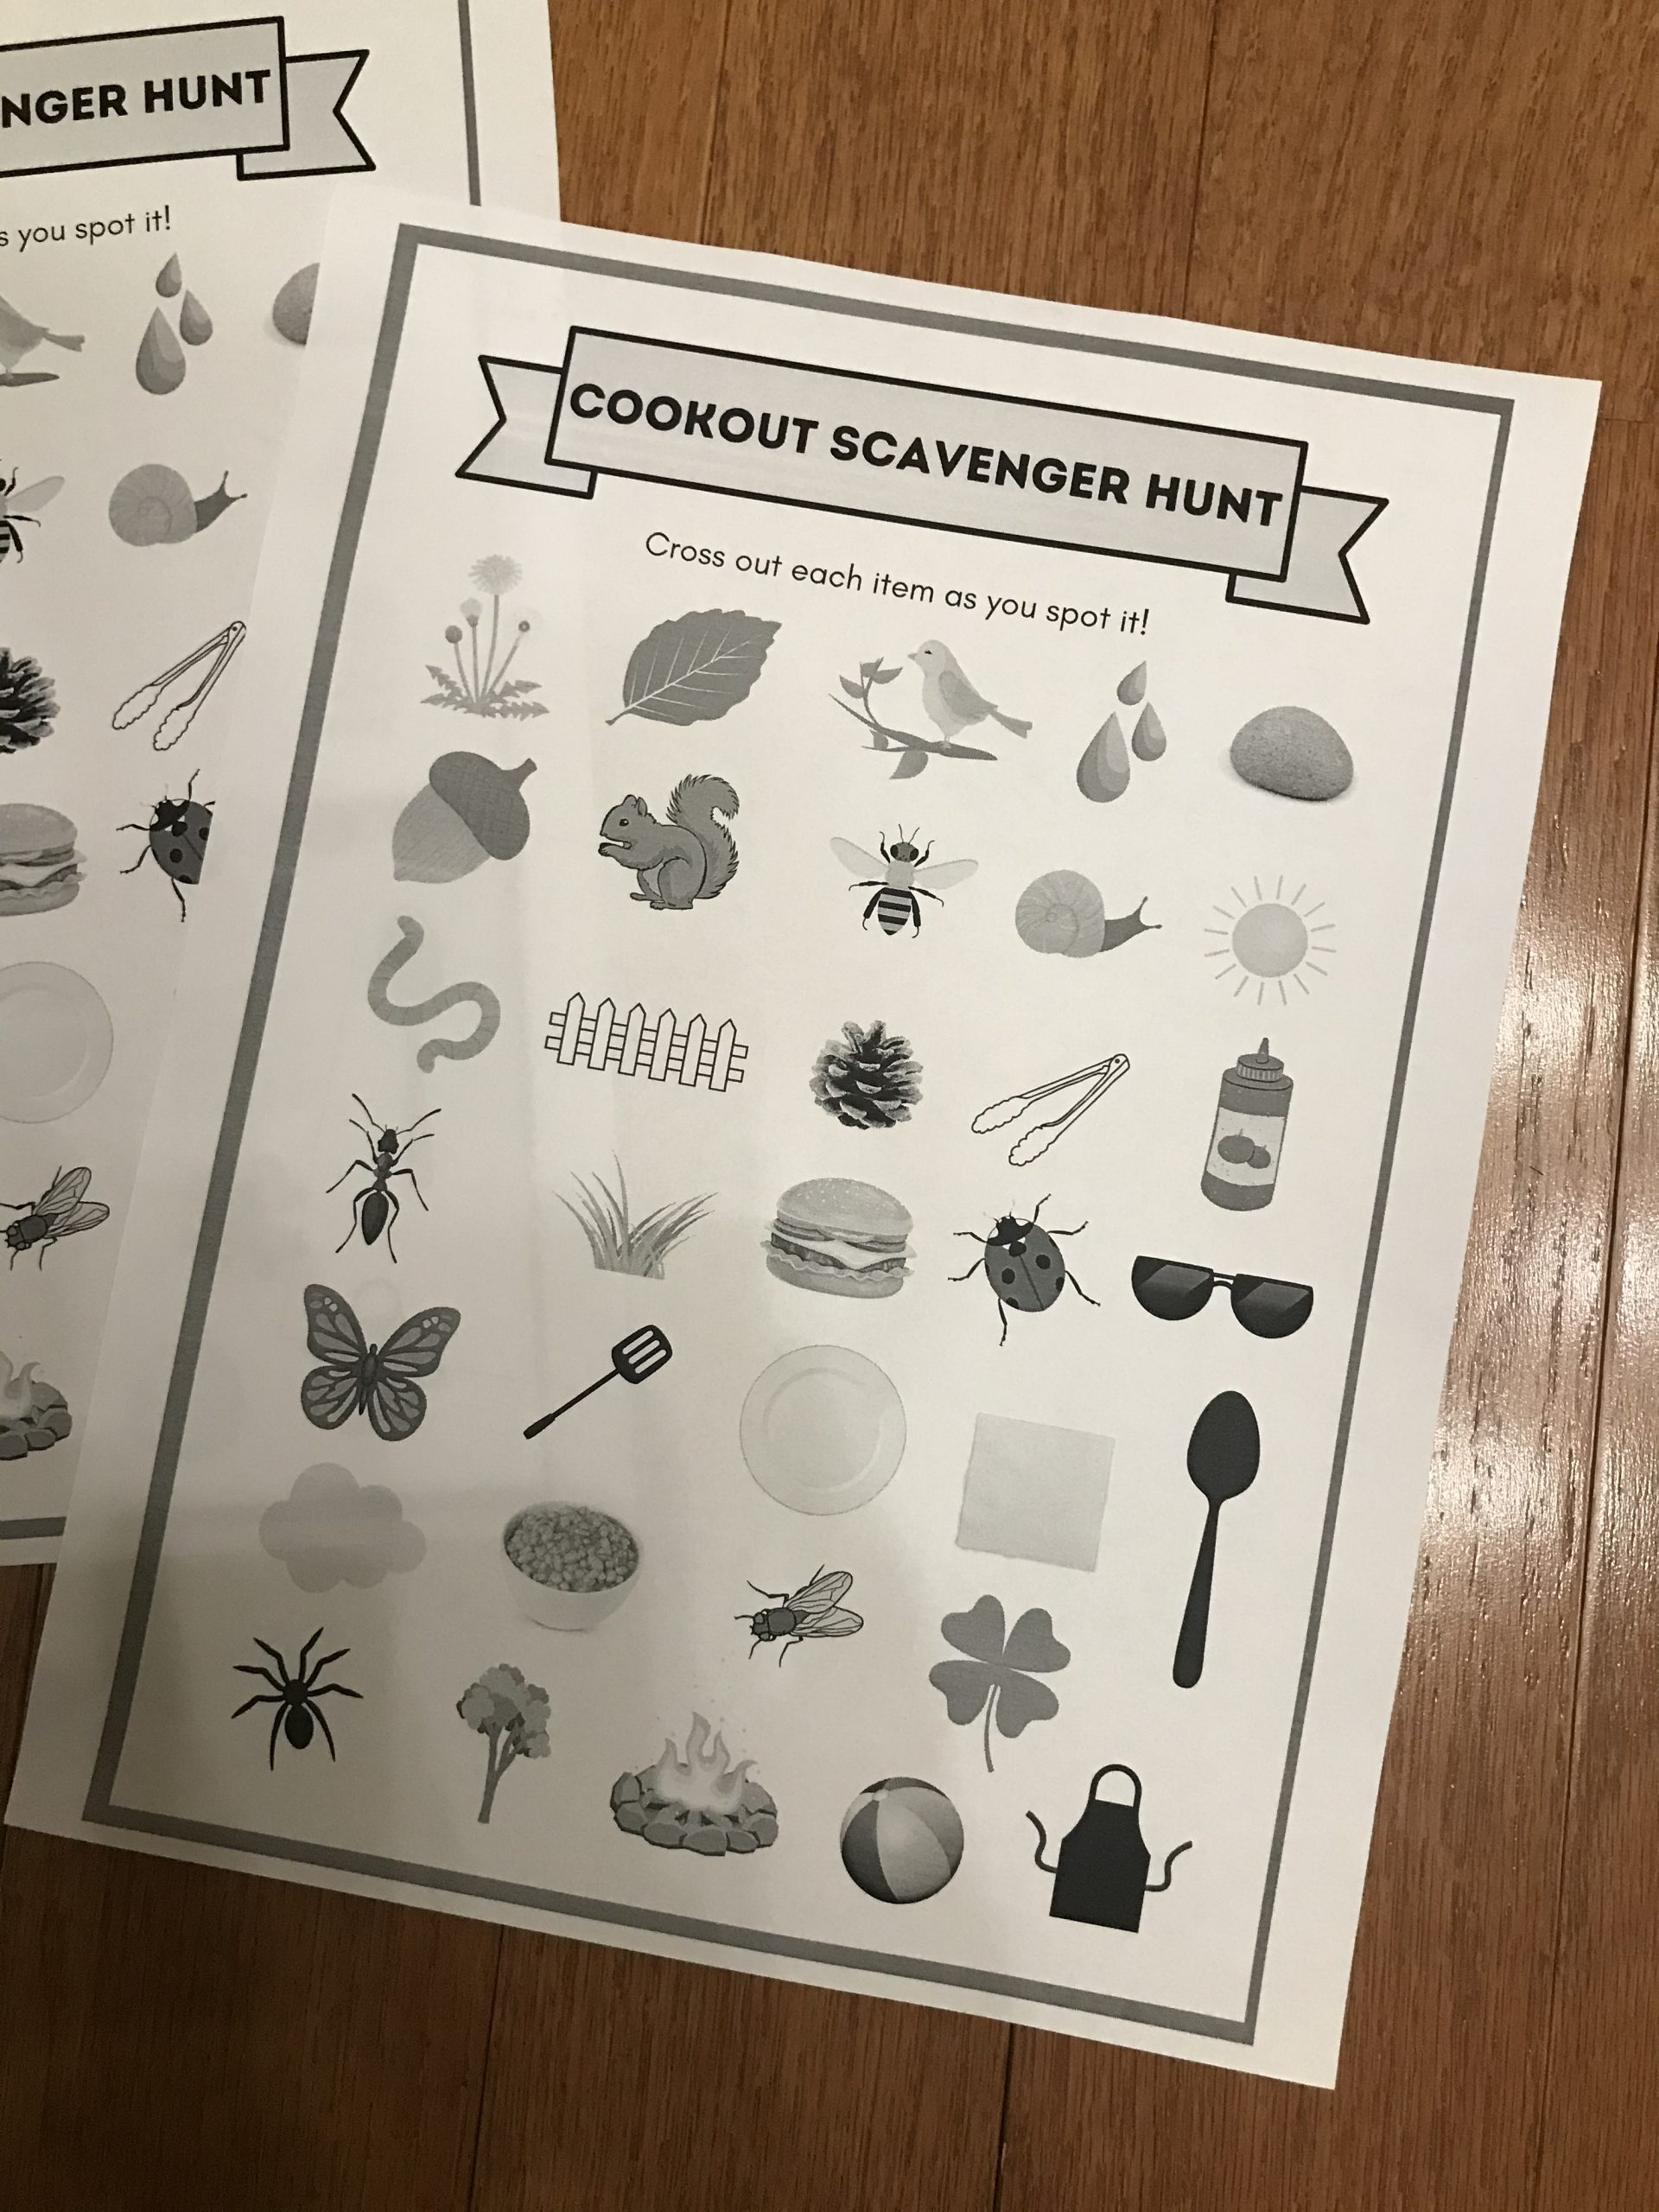 Cookout Scavenger Hunt Printable Game for your outdoor backyard BBQ